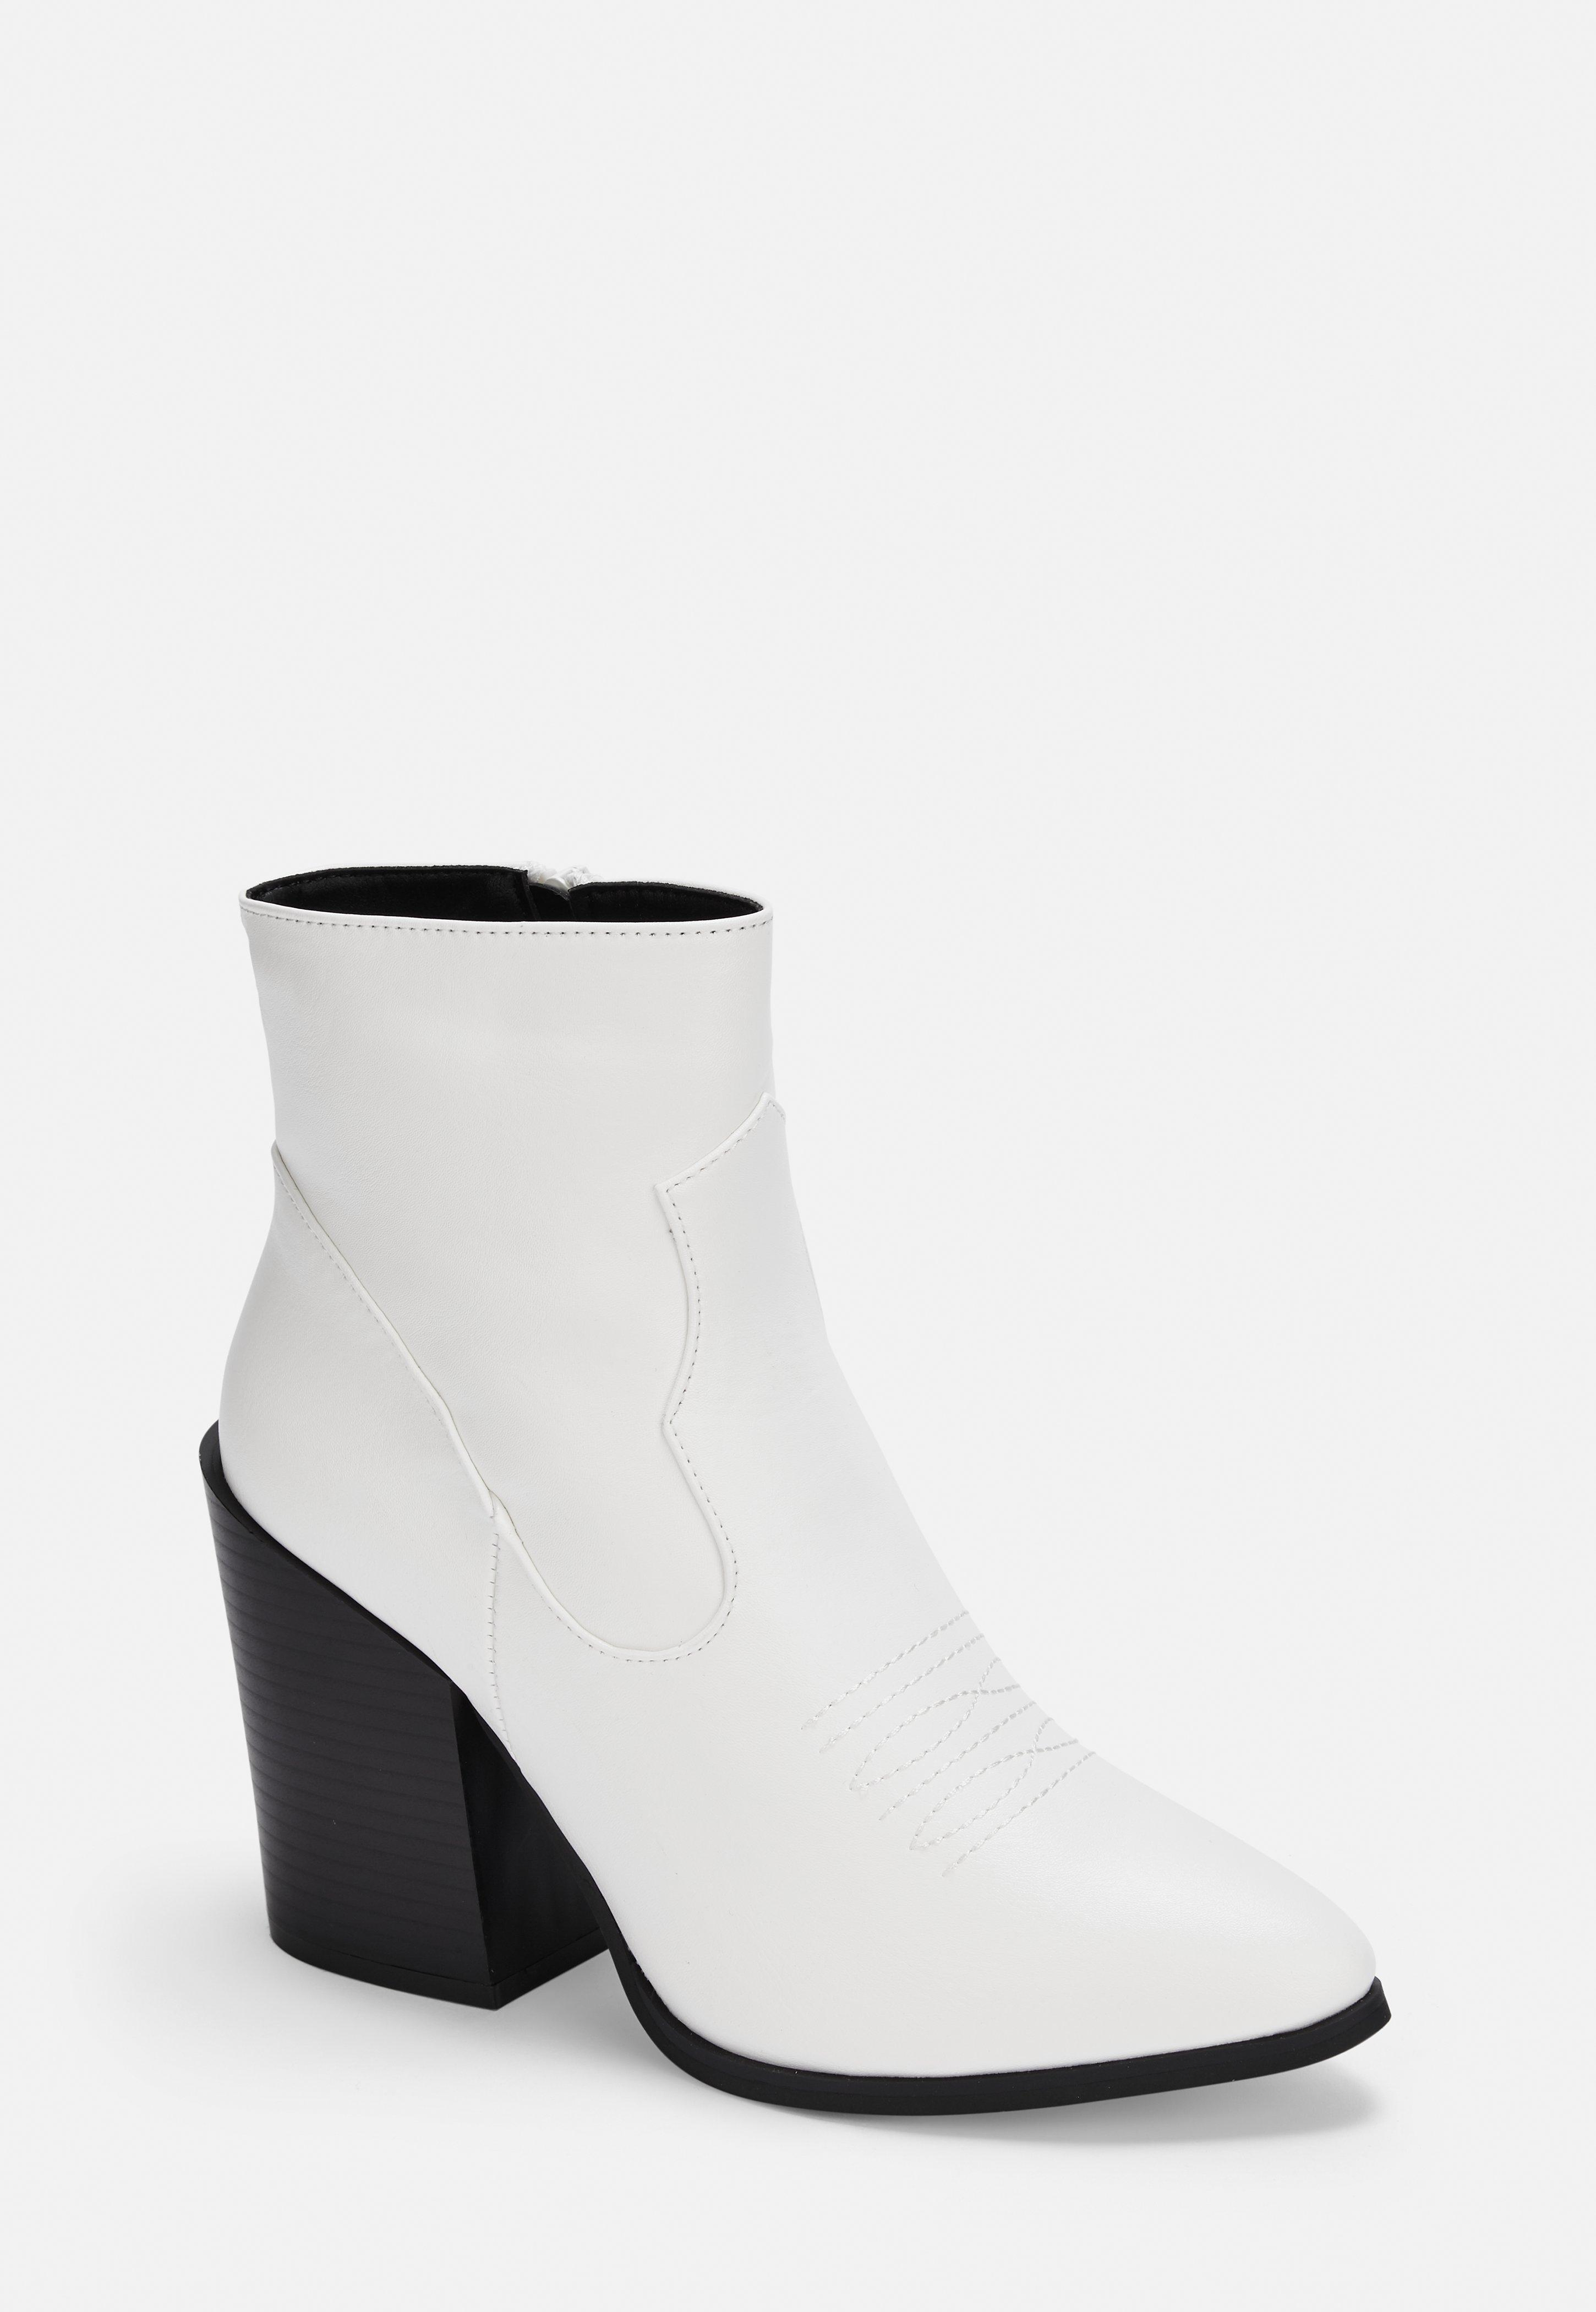 272e6b1bf838c Women's Boots | Ankle Boots | Black Boots | Missguided